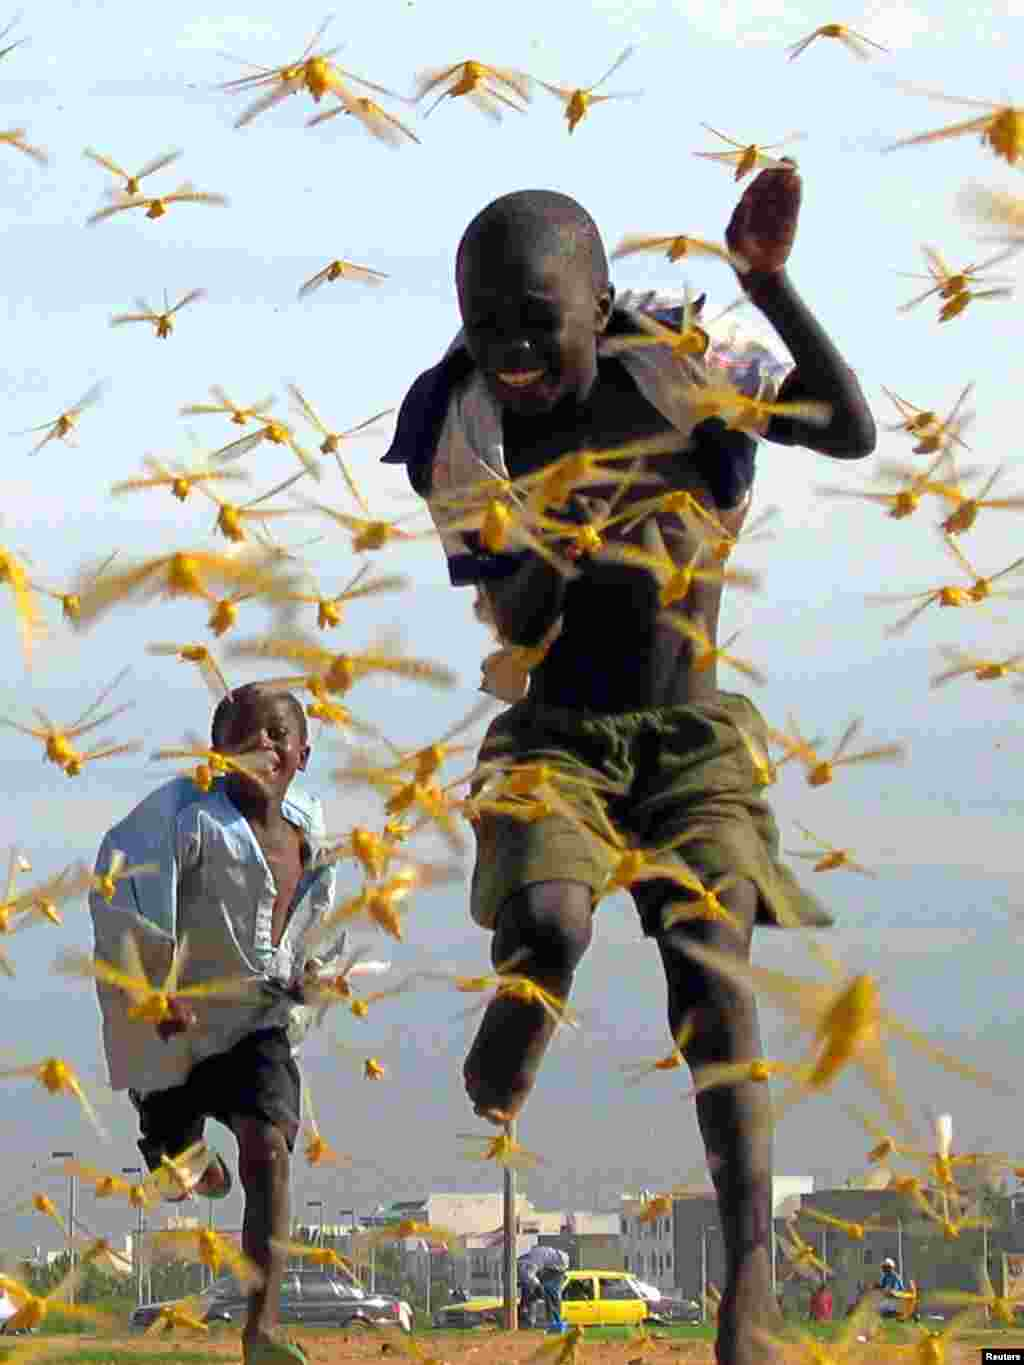 Senegalese children run as locusts spread in the capital Dakar September 1, 2004. Only a military-style operation with bases across West Africa can stop the worst locust invasion for 15 years, Senegal's President Abdoulaye Wade said on Tuesday as the insects swept into his capital. The United Nations Food and Agriculture Organisation (FAO) warned last week that the locust swarms infesting countries from Mauritania to Chad could develop into a full-scale plague without additional foreign aid. REUTERS/Pierre Holtz